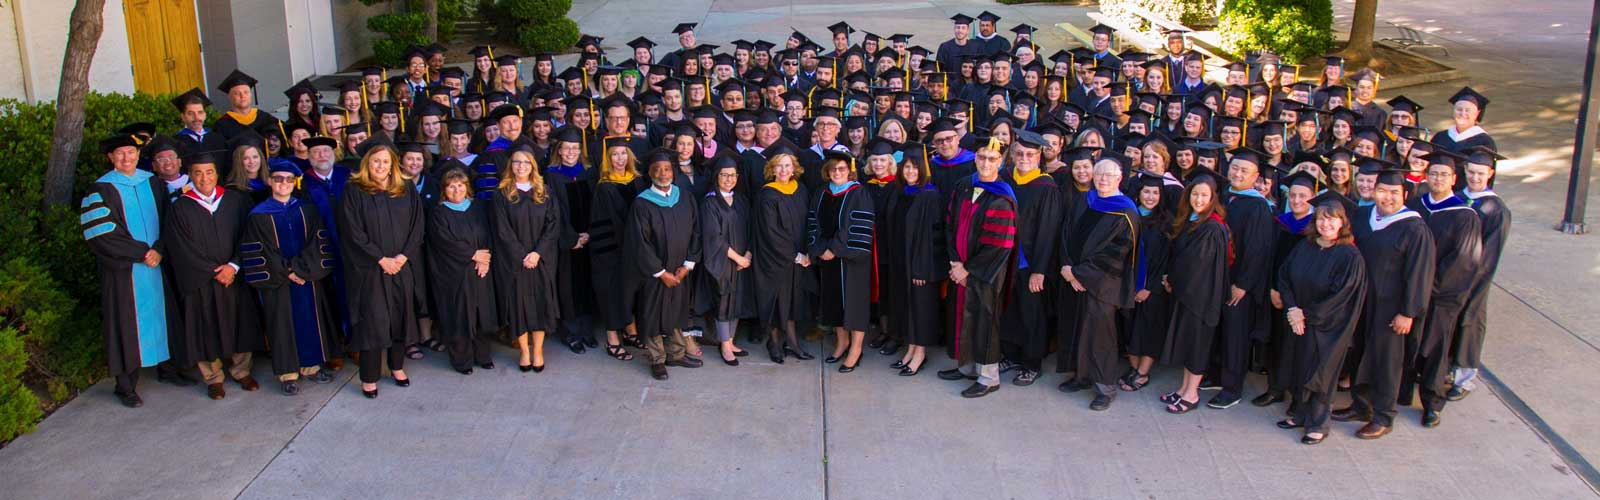 faculty at 2017 commencement